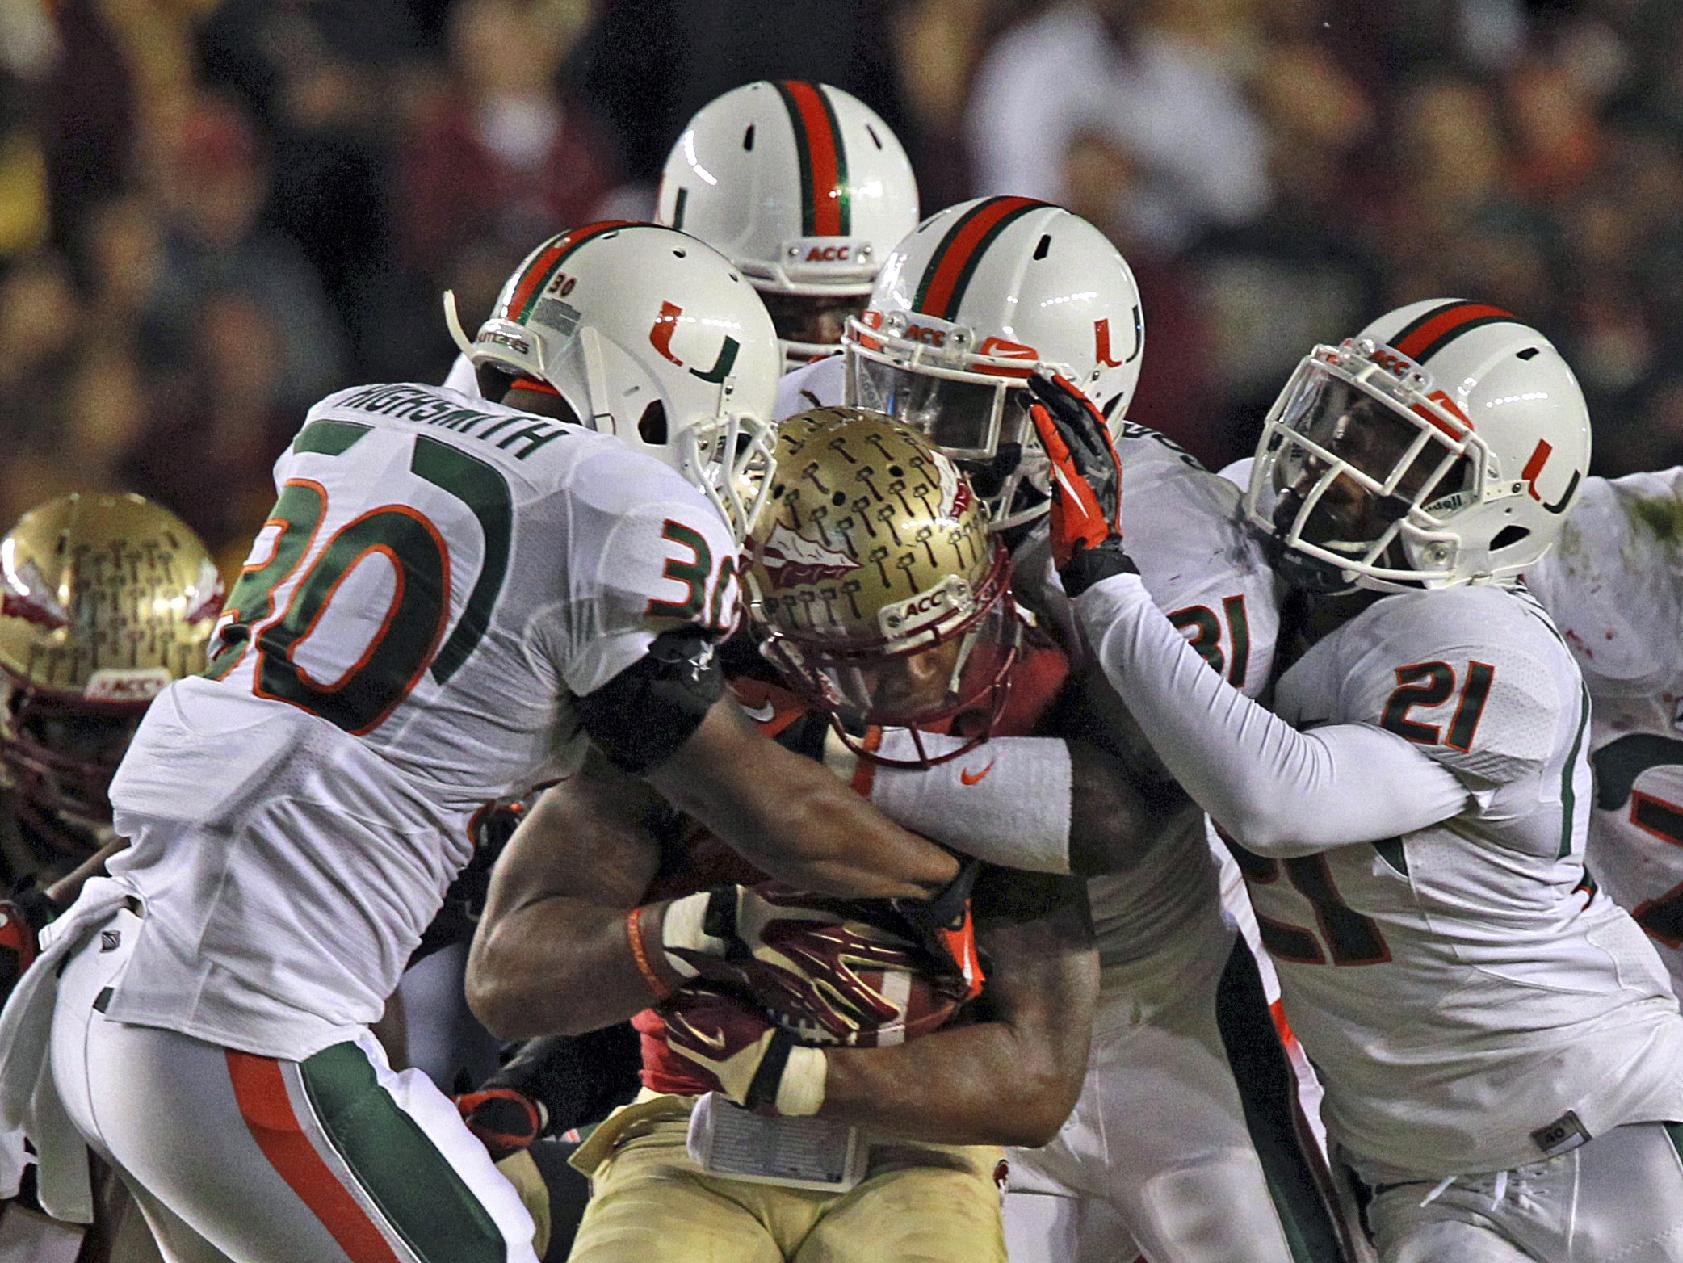 Miami's defense smoothers Florida State's Karlos Williams in the first quarter of an NCAA college football game Saturday, Nov. 2, 2013, in Tallahassee, Fla